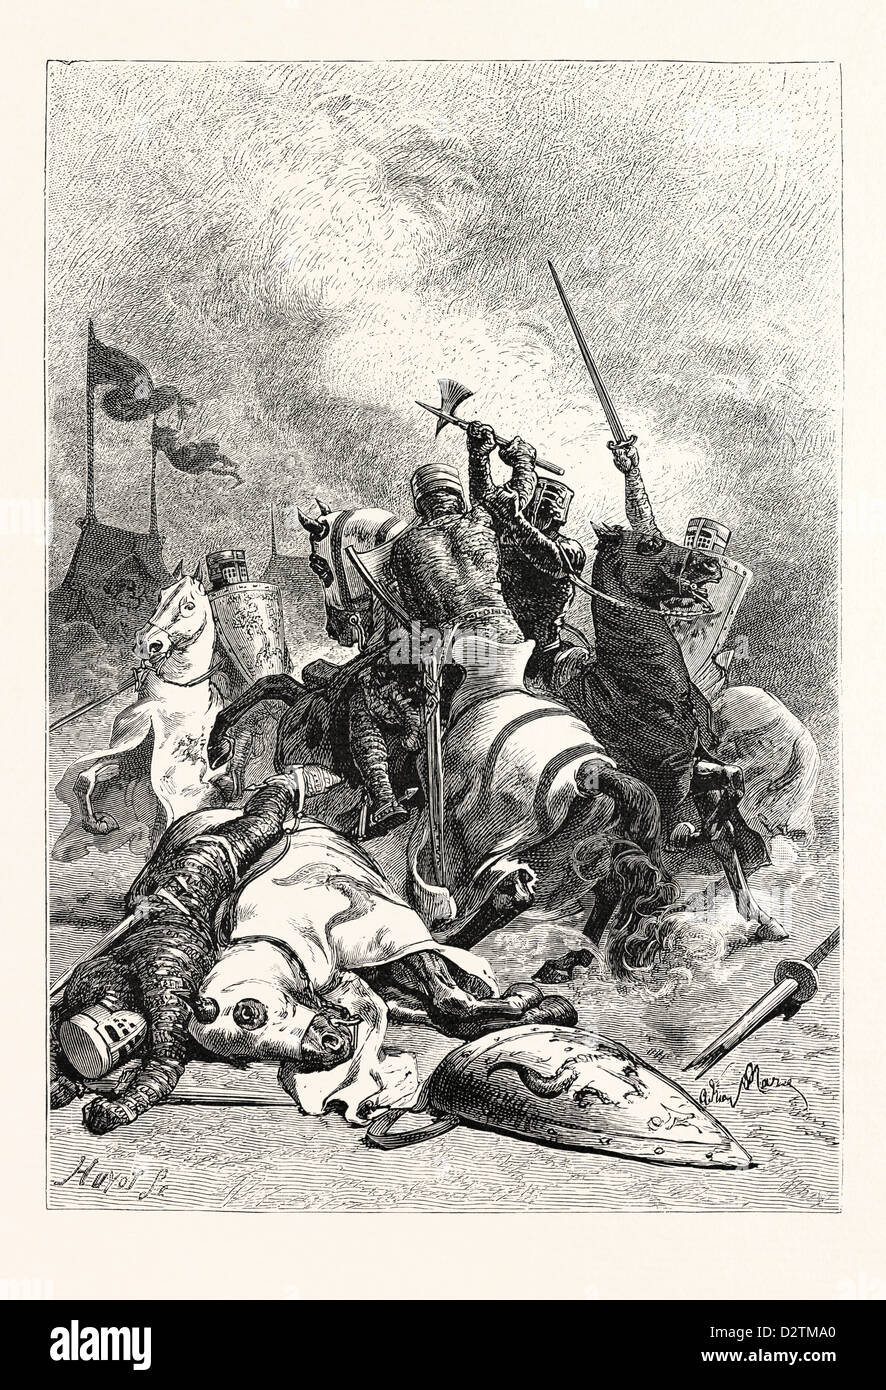 COMBAT OF NORMAN KNIGHTS. - Stock Image